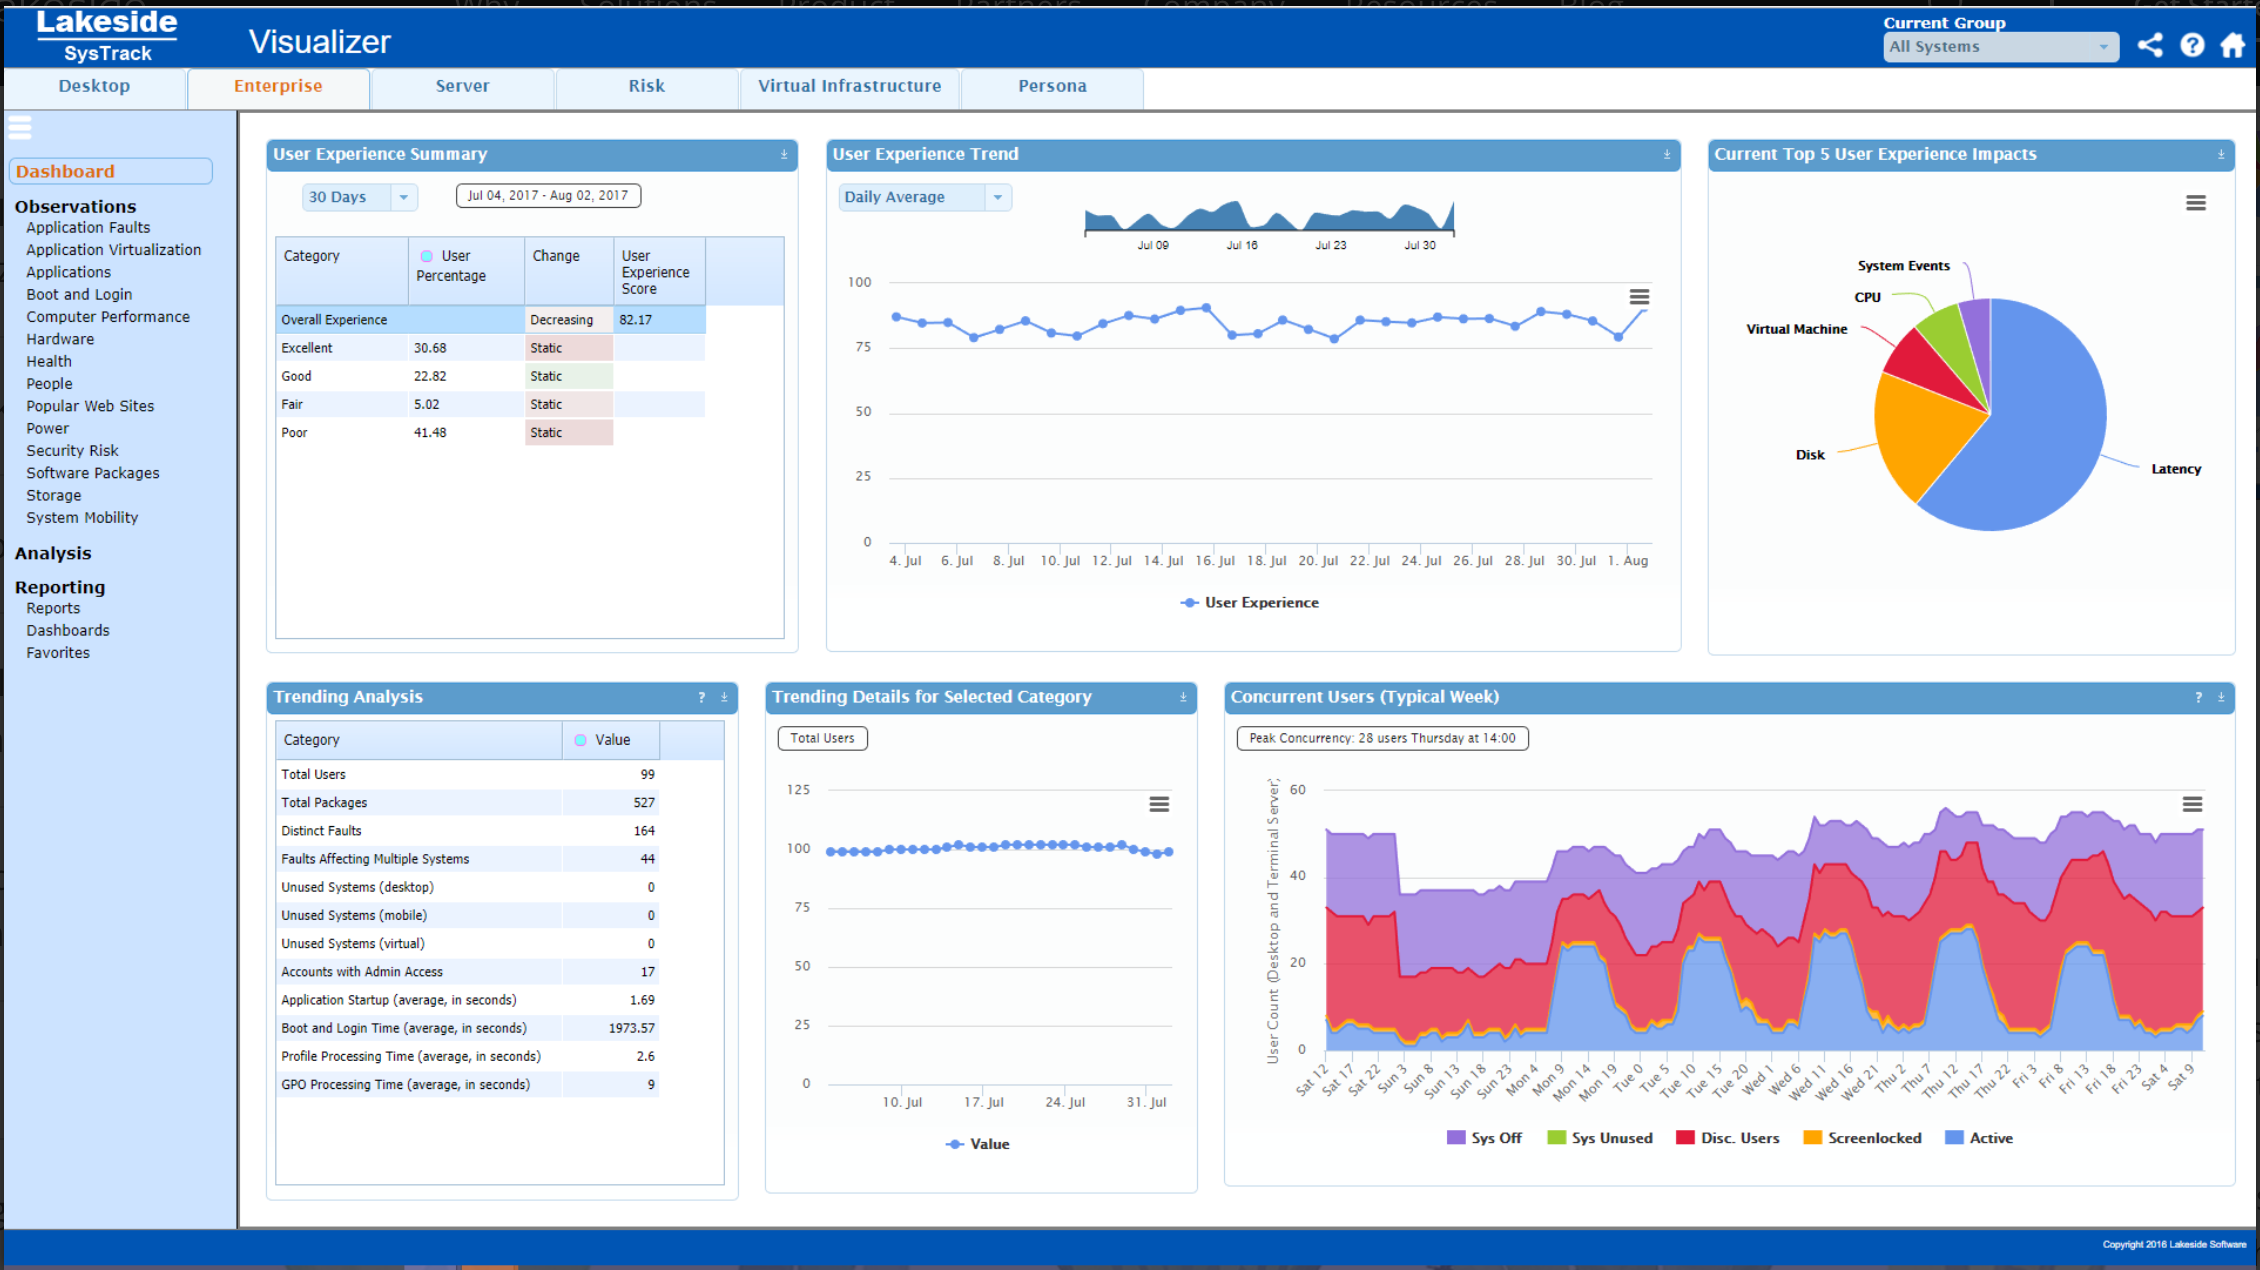 View trending details and a user experience summary from the dashboard